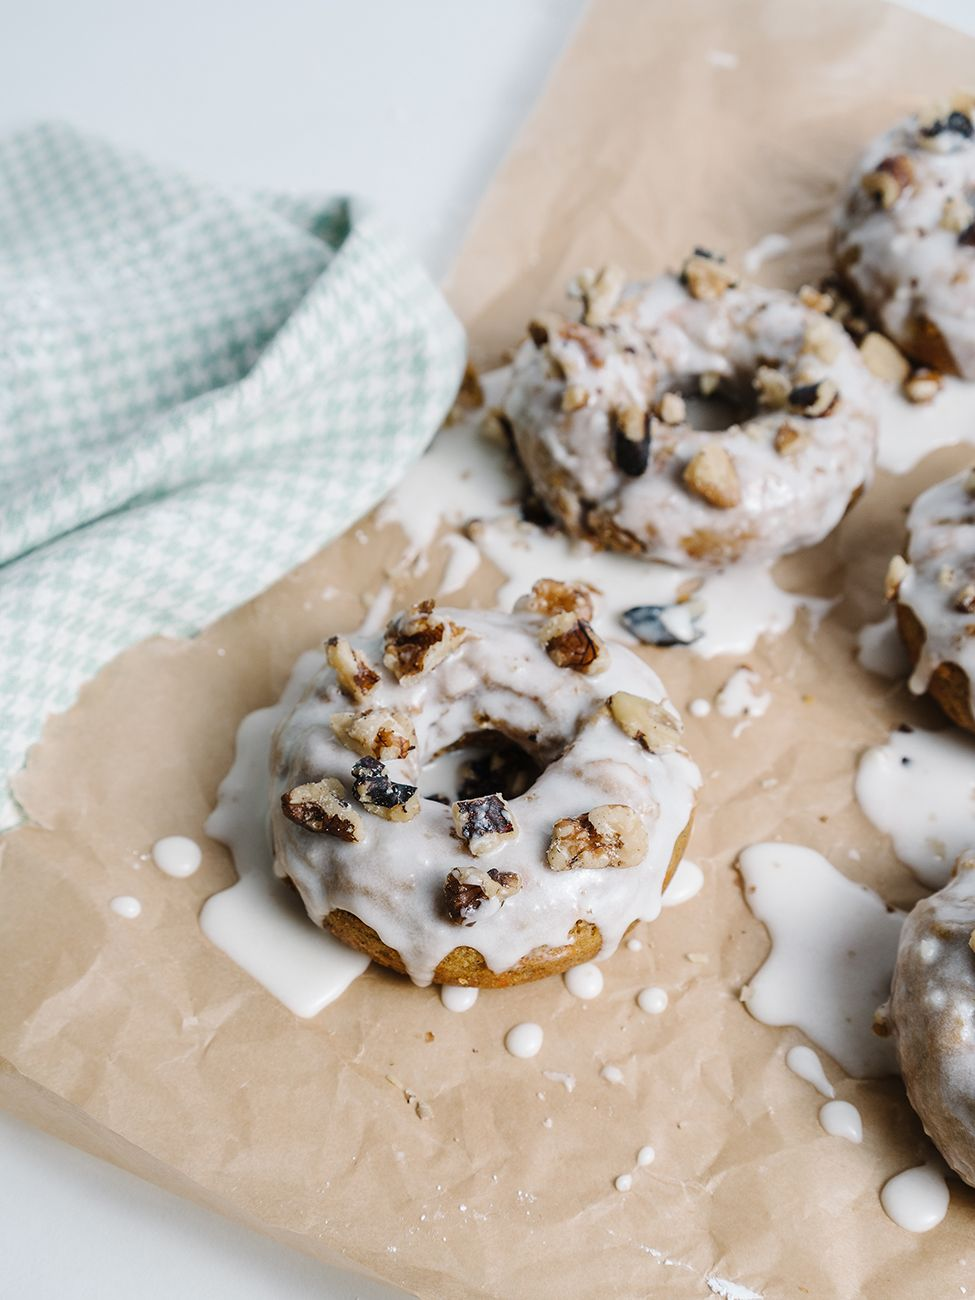 Gluten free carrot cake donuts with goat cheese glaze